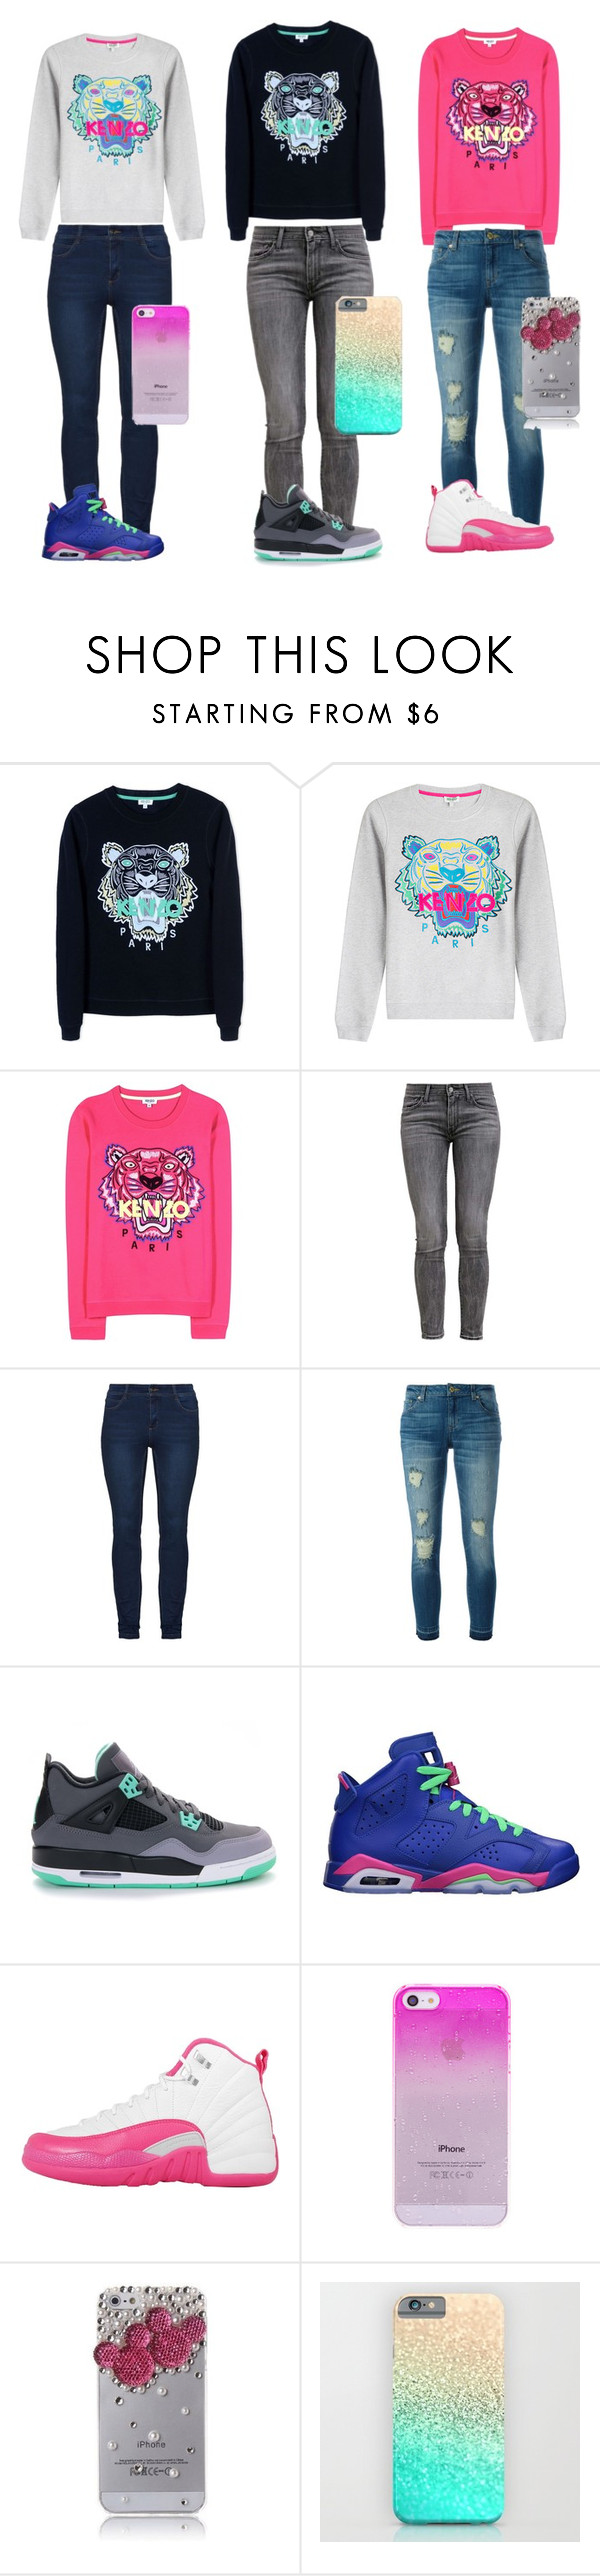 """pick your fave"" by official-bria-j ❤ liked on Polyvore featuring Kenzo, Levi's, MICHAEL Michael Kors, Retrò and NIKE"